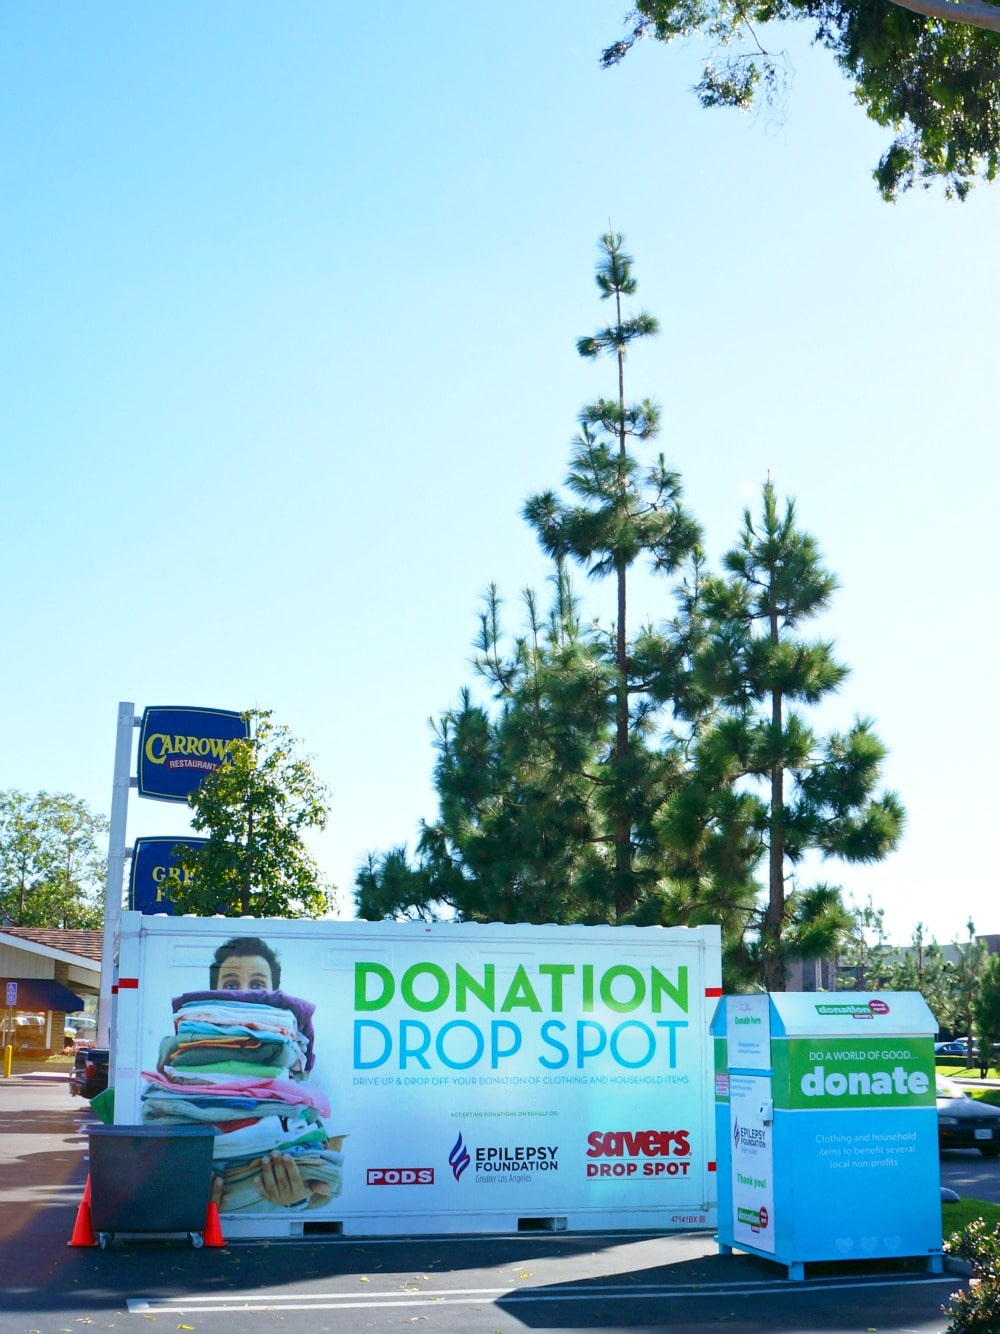 Savers Donation Drop Spots in Orange County